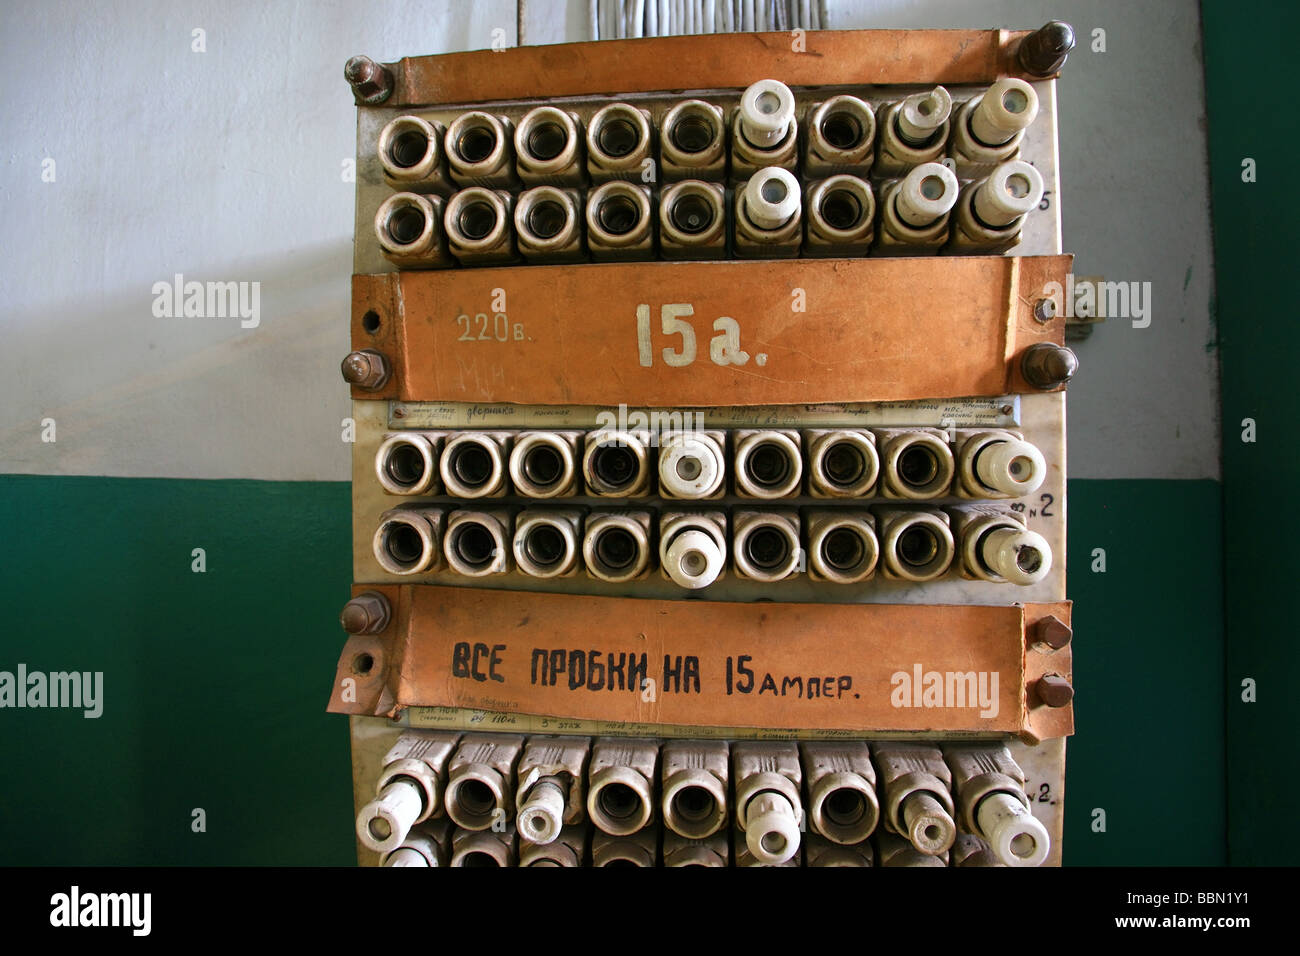 hight resolution of old fuses fuse box stock photos old fuses fuse box stock images fuse box fuse replacement fuse fuse box